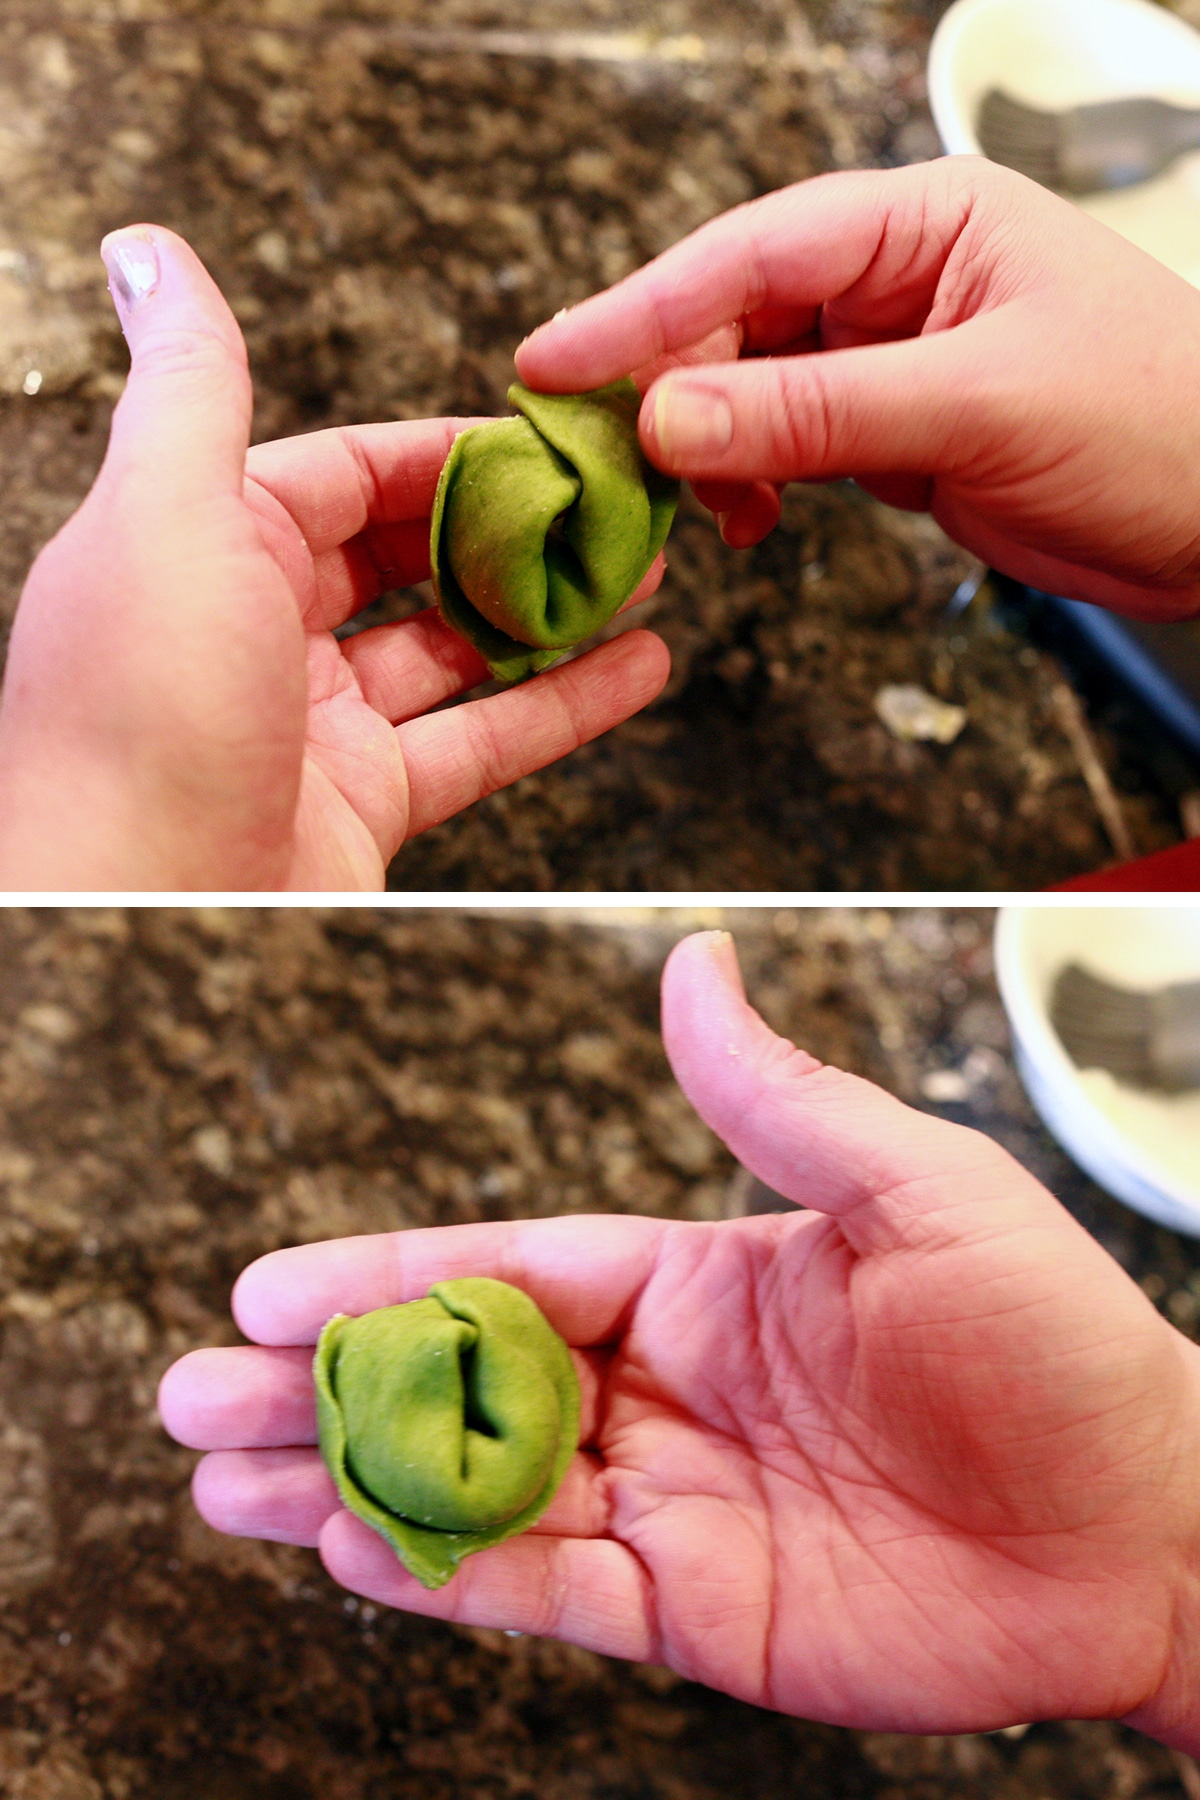 Two hands folding the tortellini as described in the text.